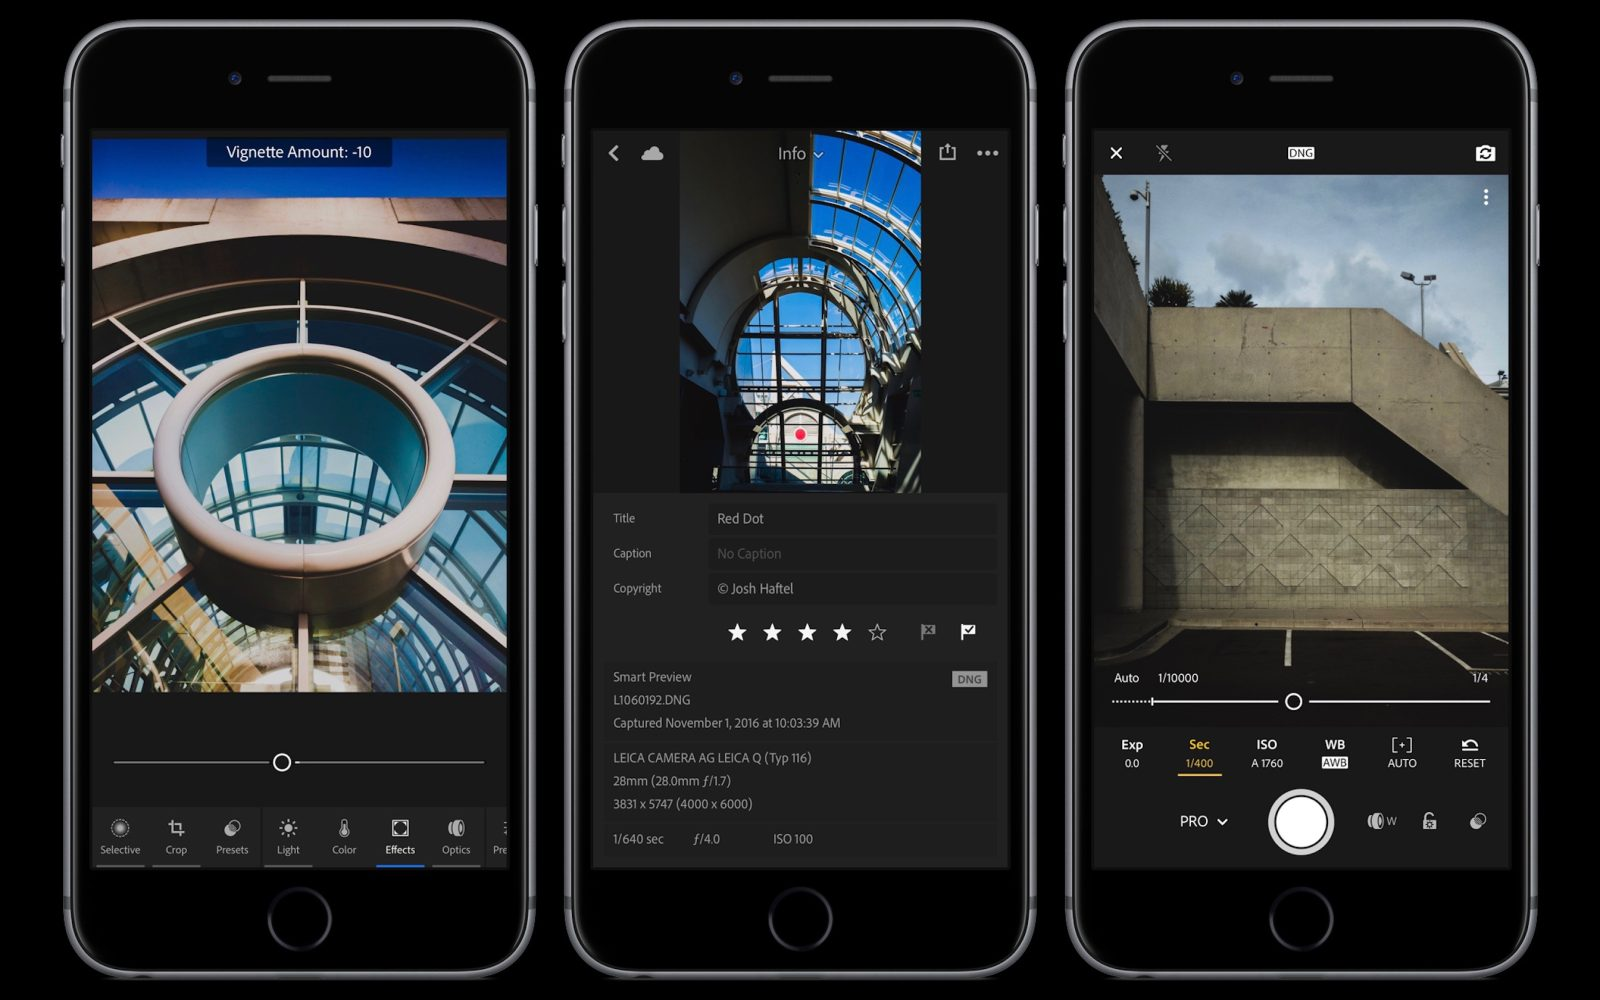 Adobe Lightroom for iOS gains improved editing interface, new info